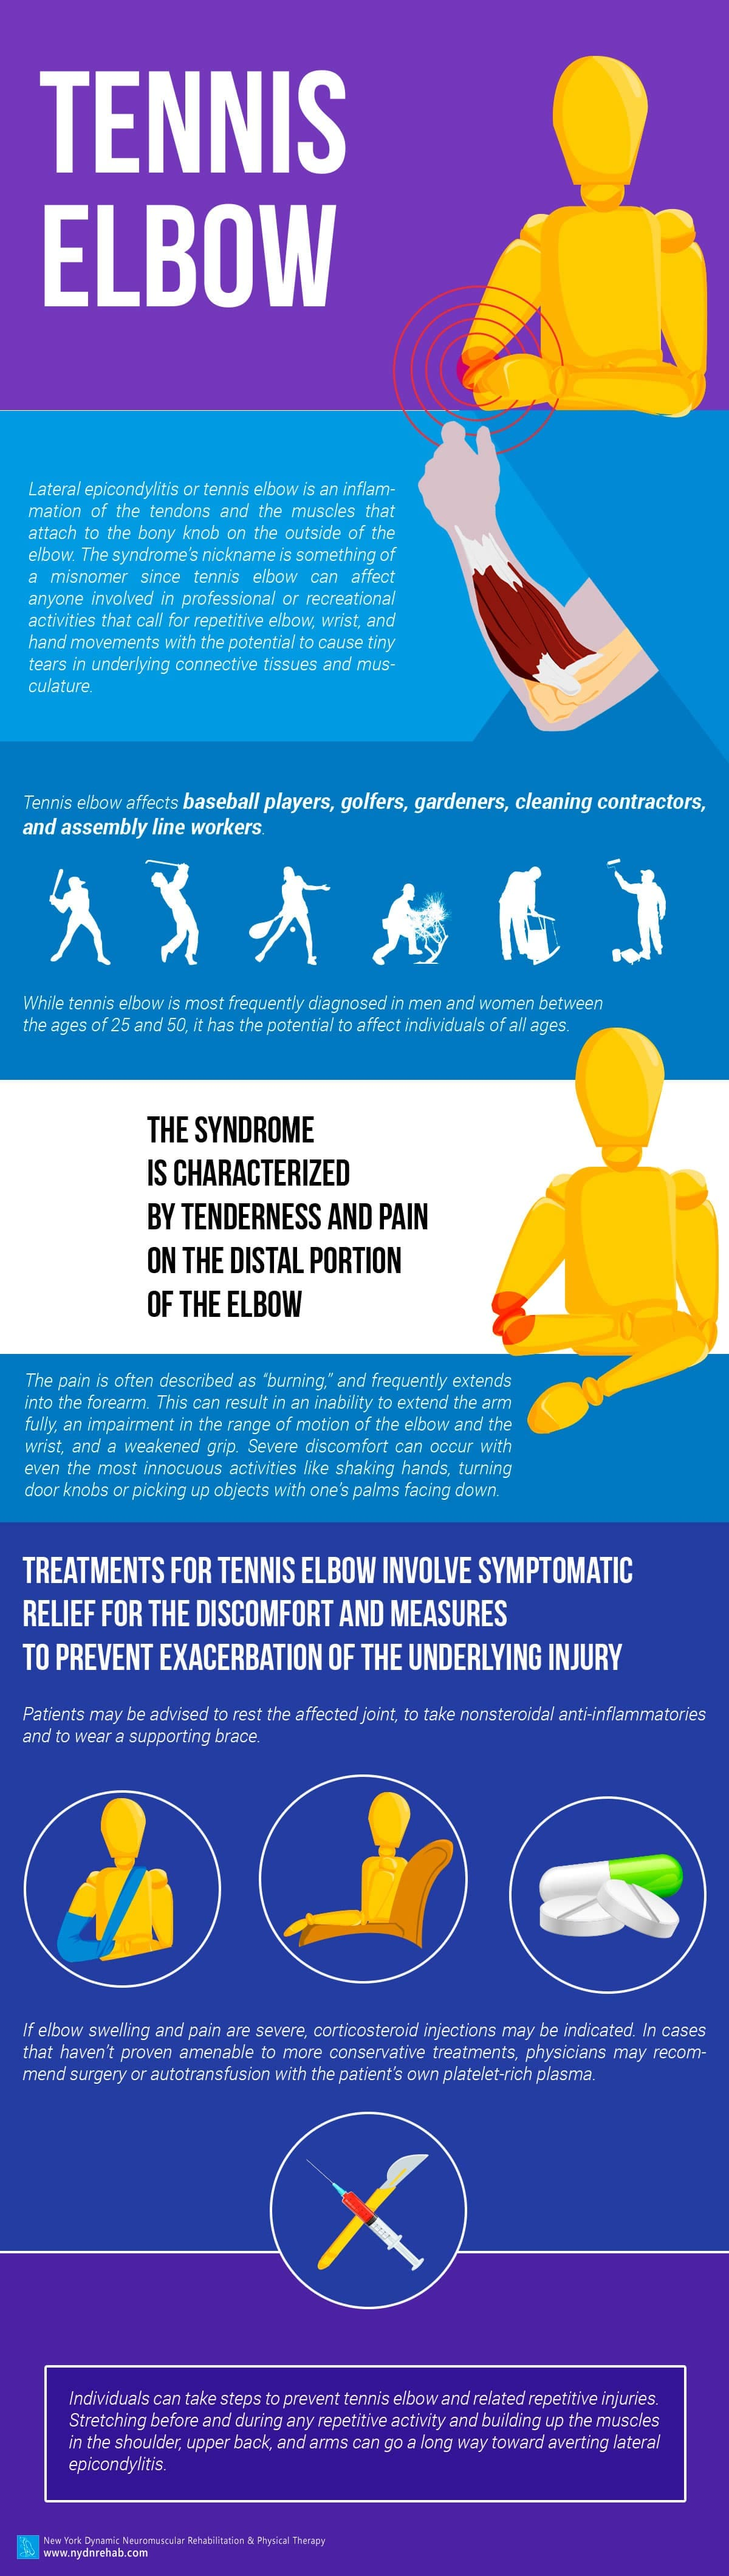 Tennis Elbow or Lateral Epicondylitis Blog  Tennis elbow